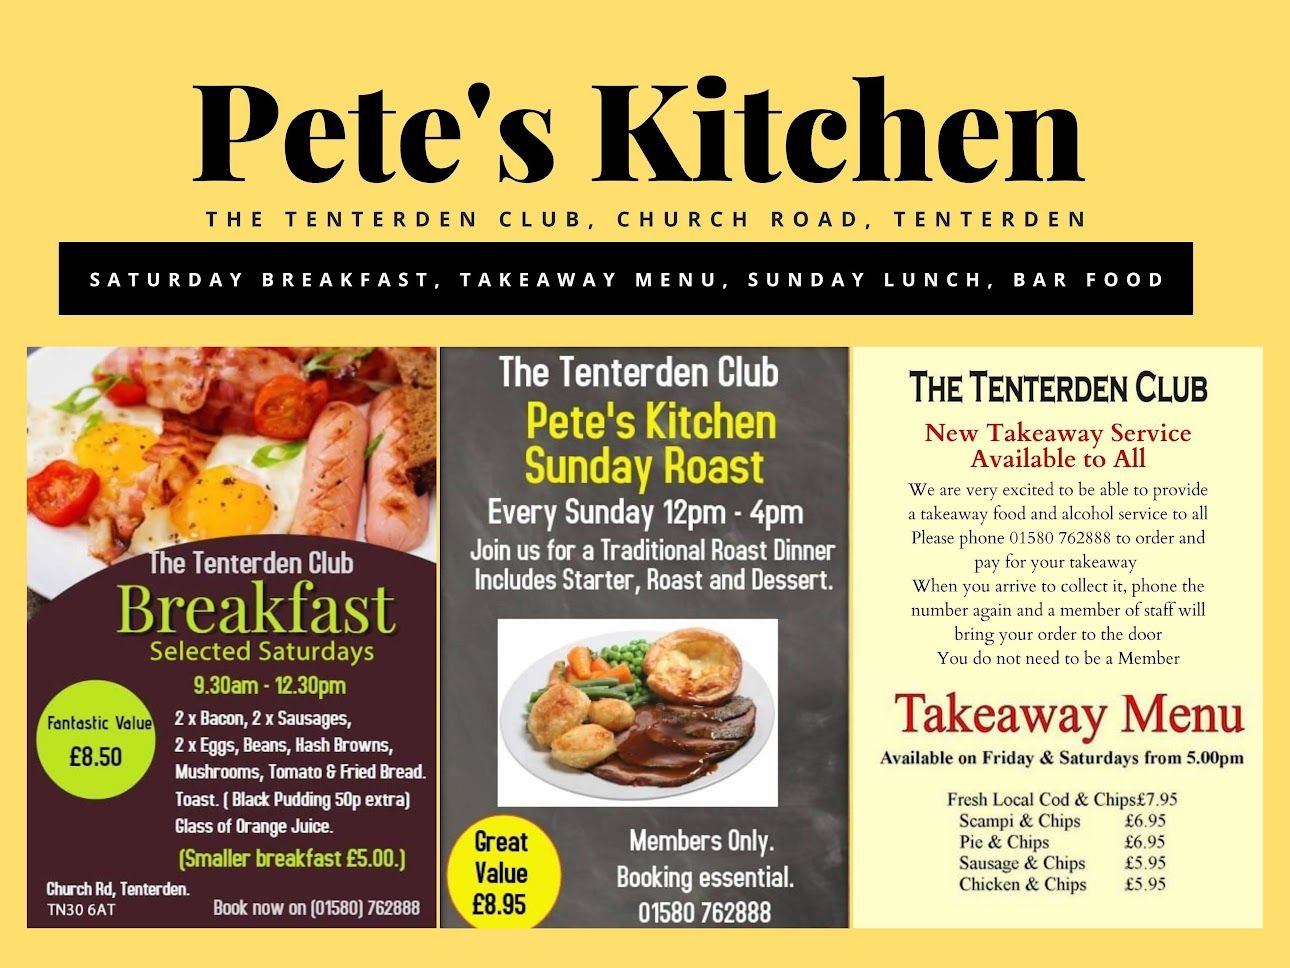 The Tenterden Club and Petes Kitchen